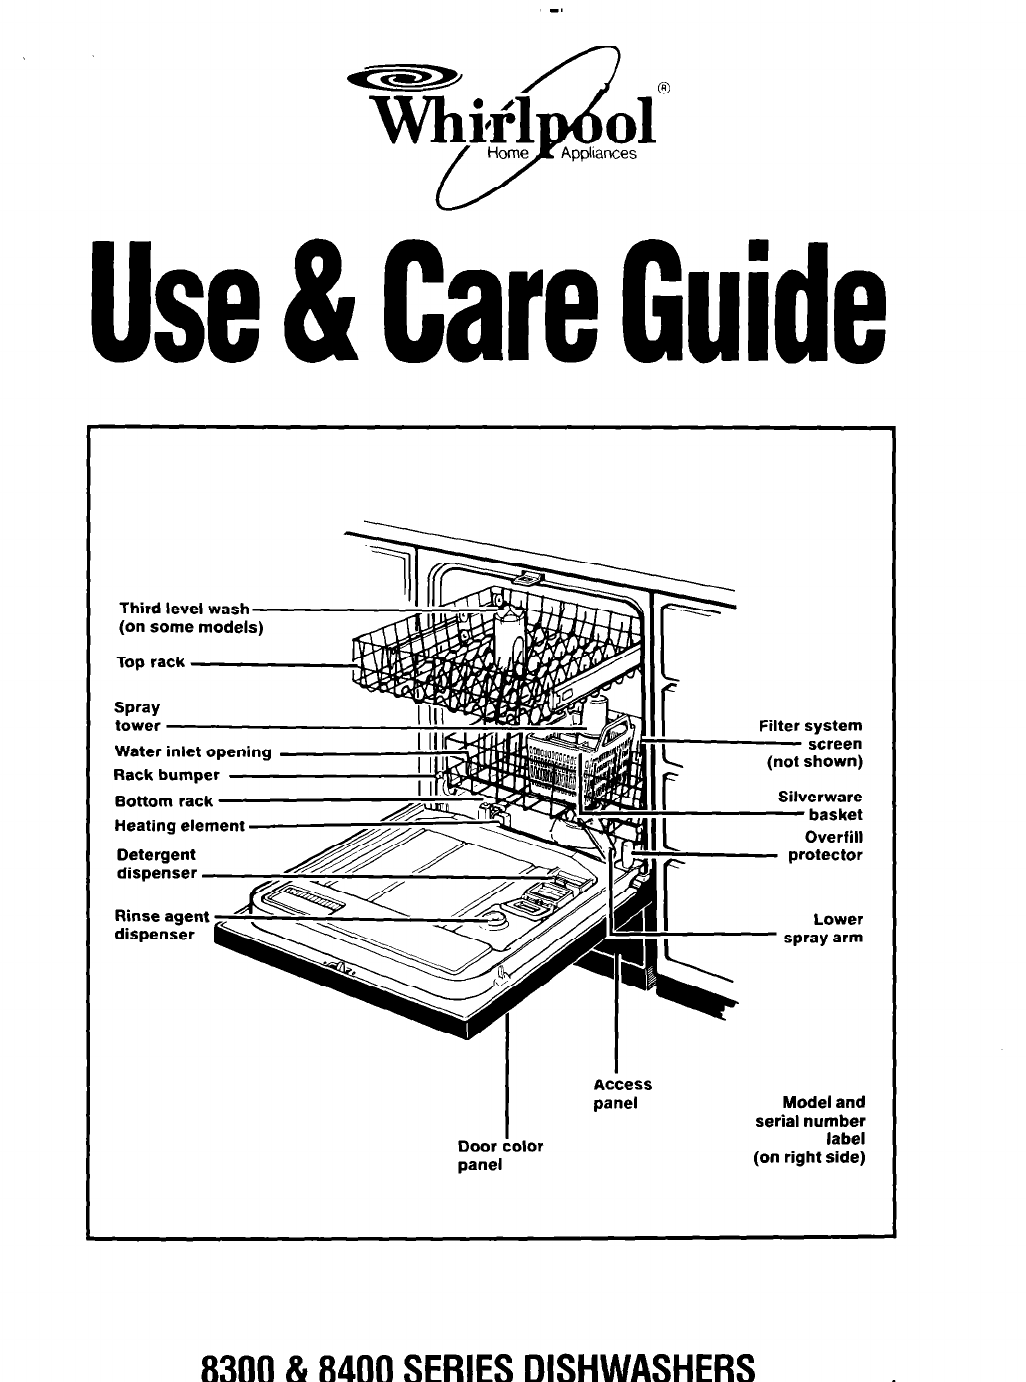 Whirlpool Dishwasher 8300 Series User Guide